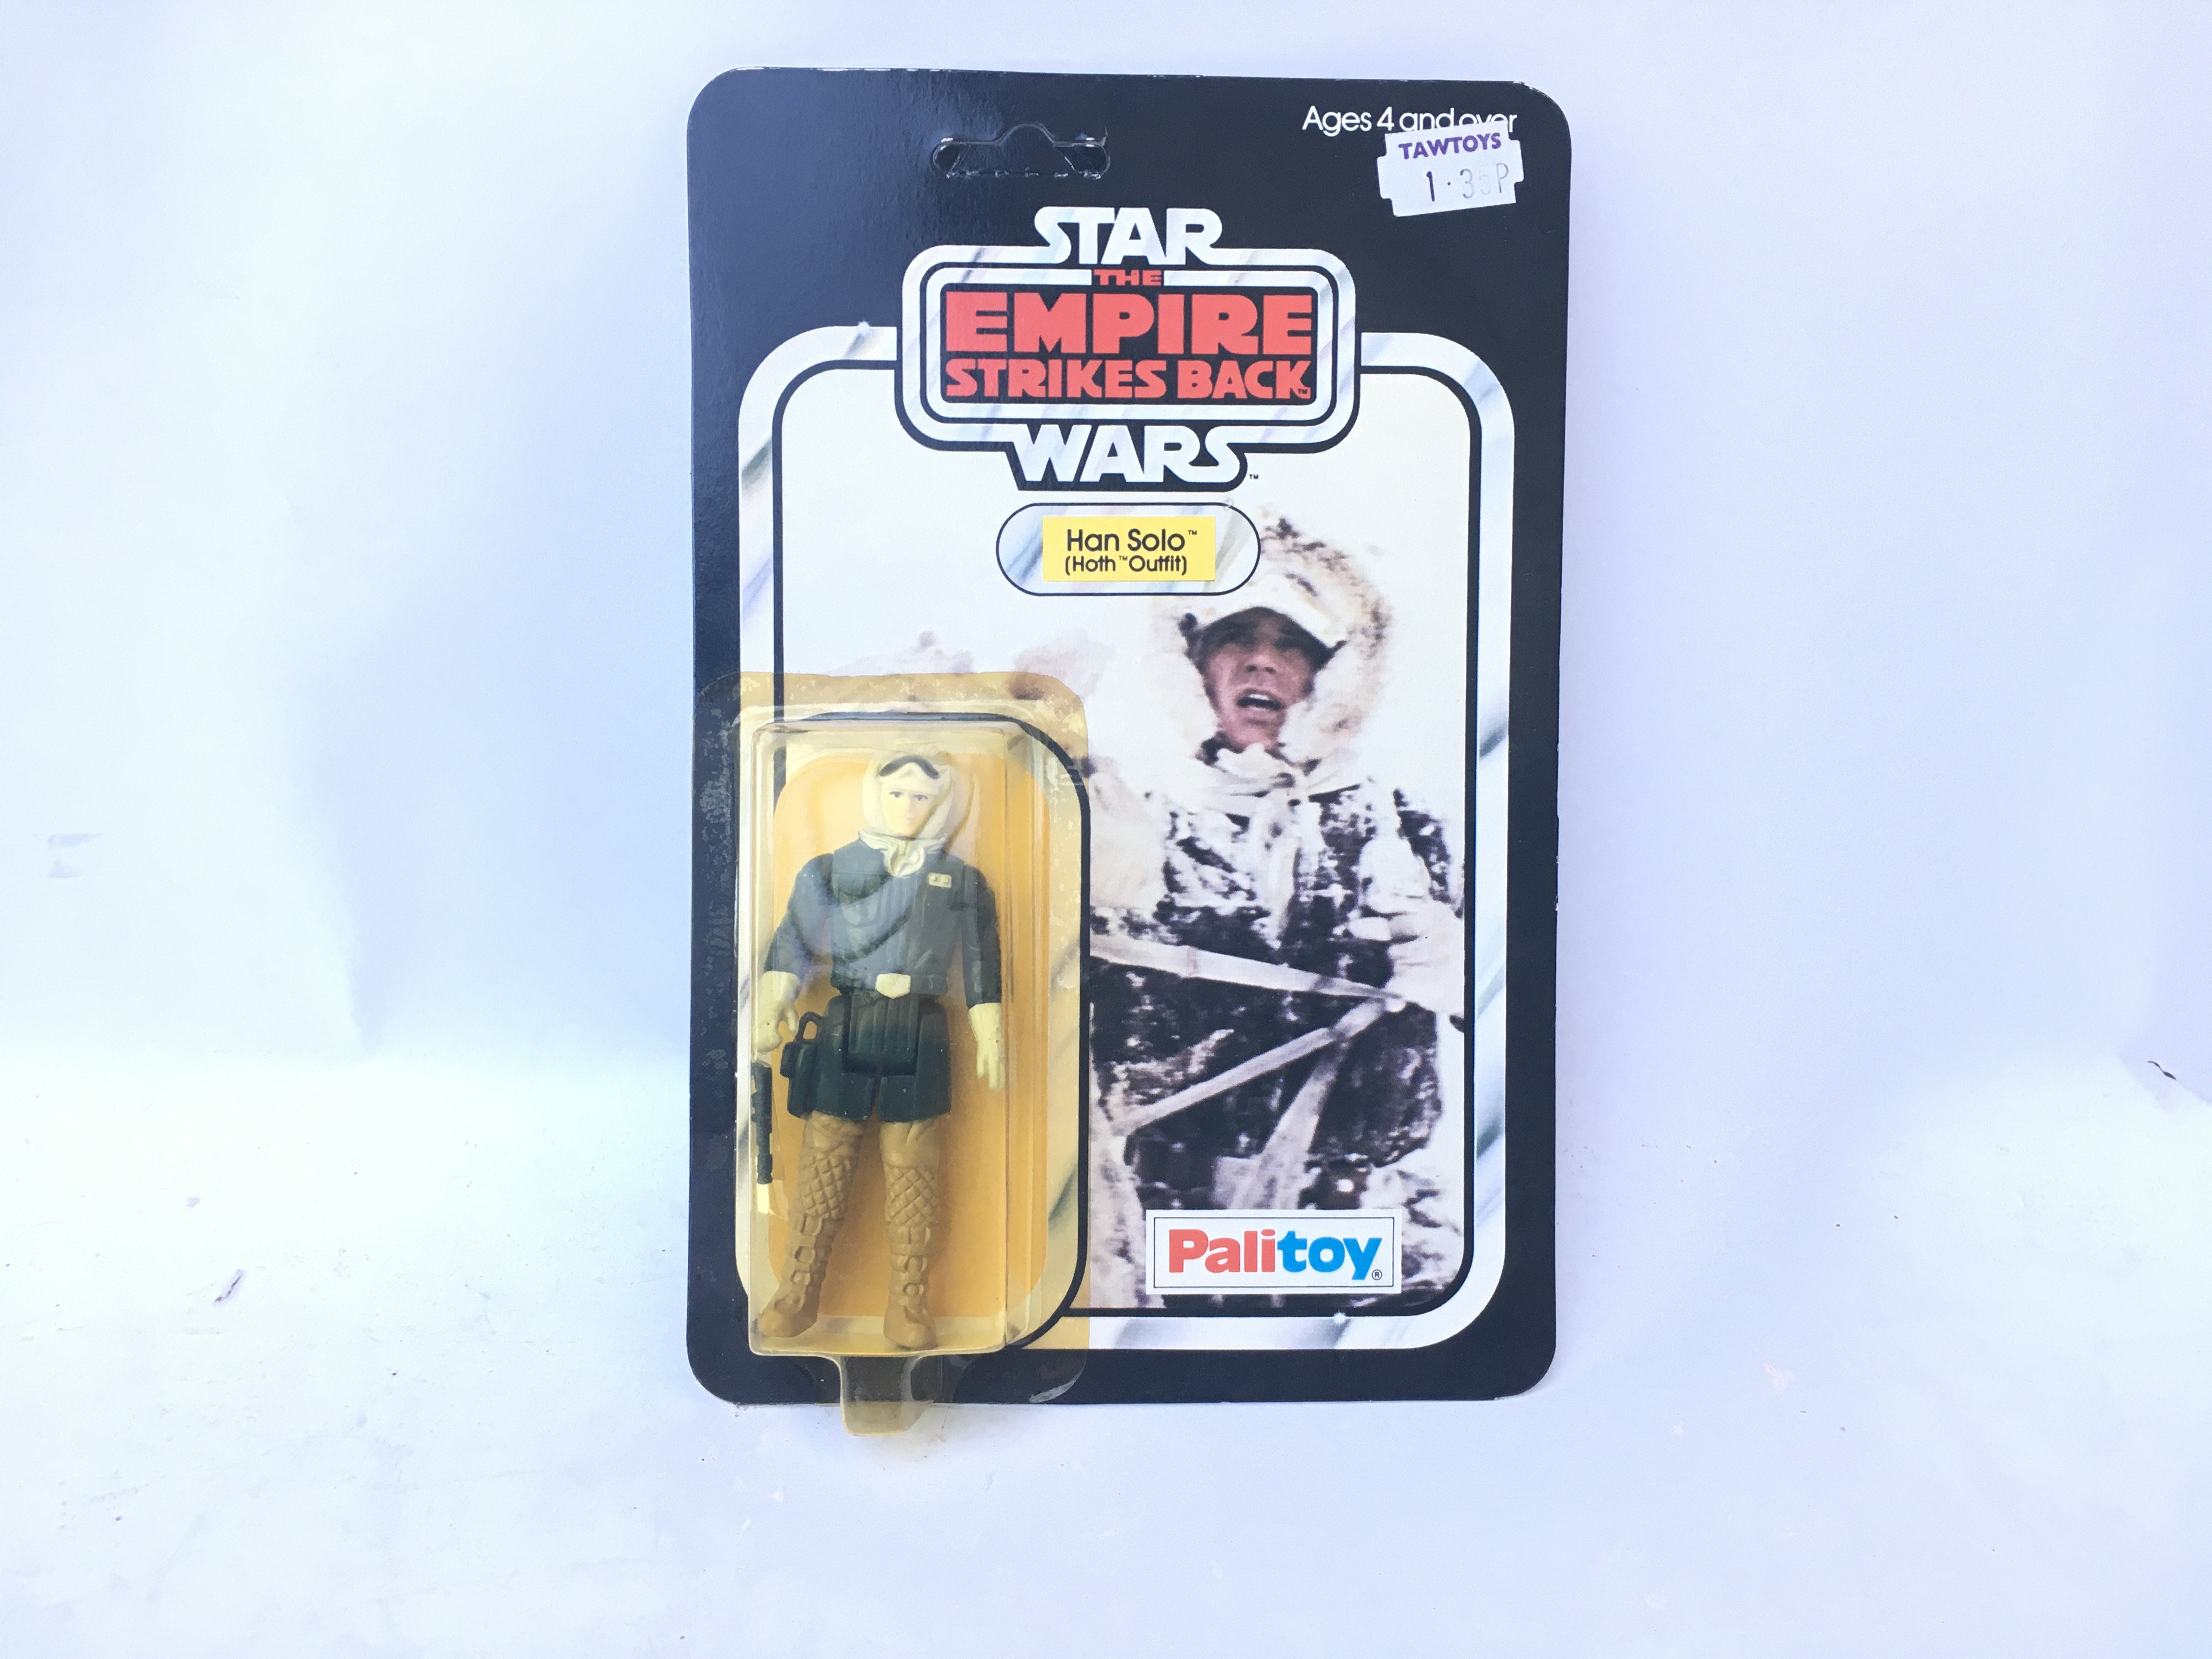 A Vintage Star Wars Empire Stokes Back Carded Han Solo (Hoth) carded.